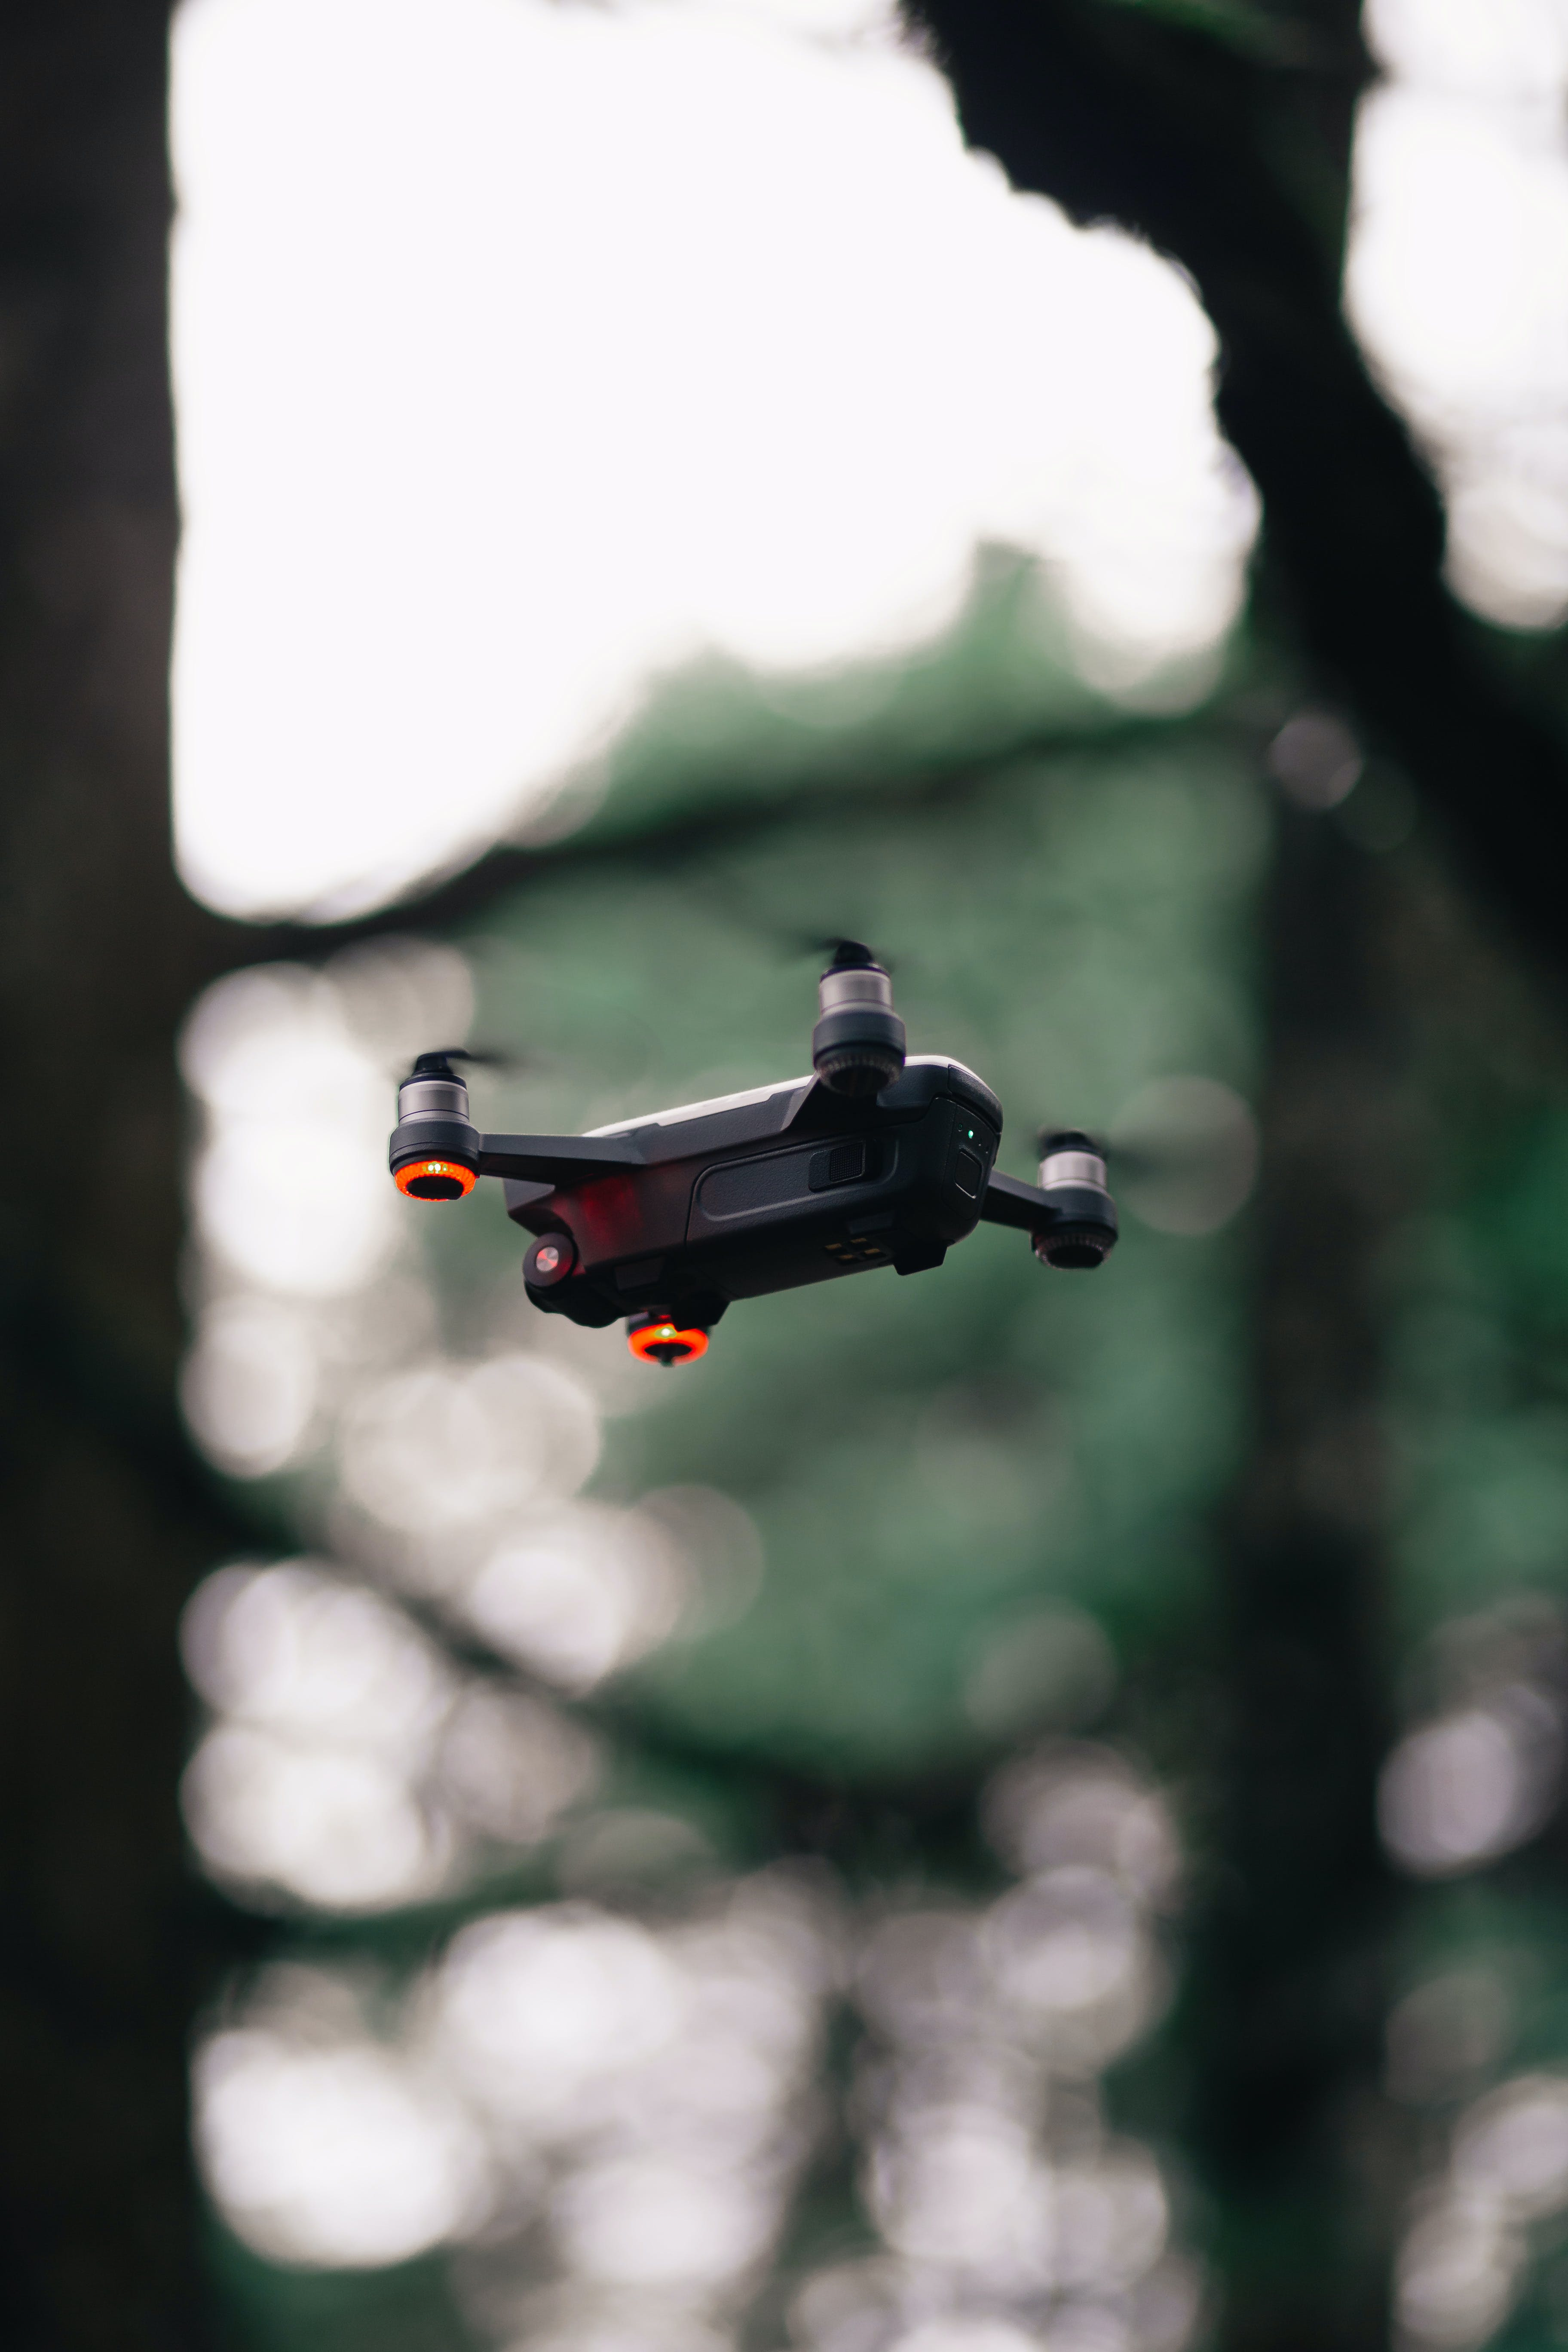 Black Quadcopter Drone Hovering Mid-air